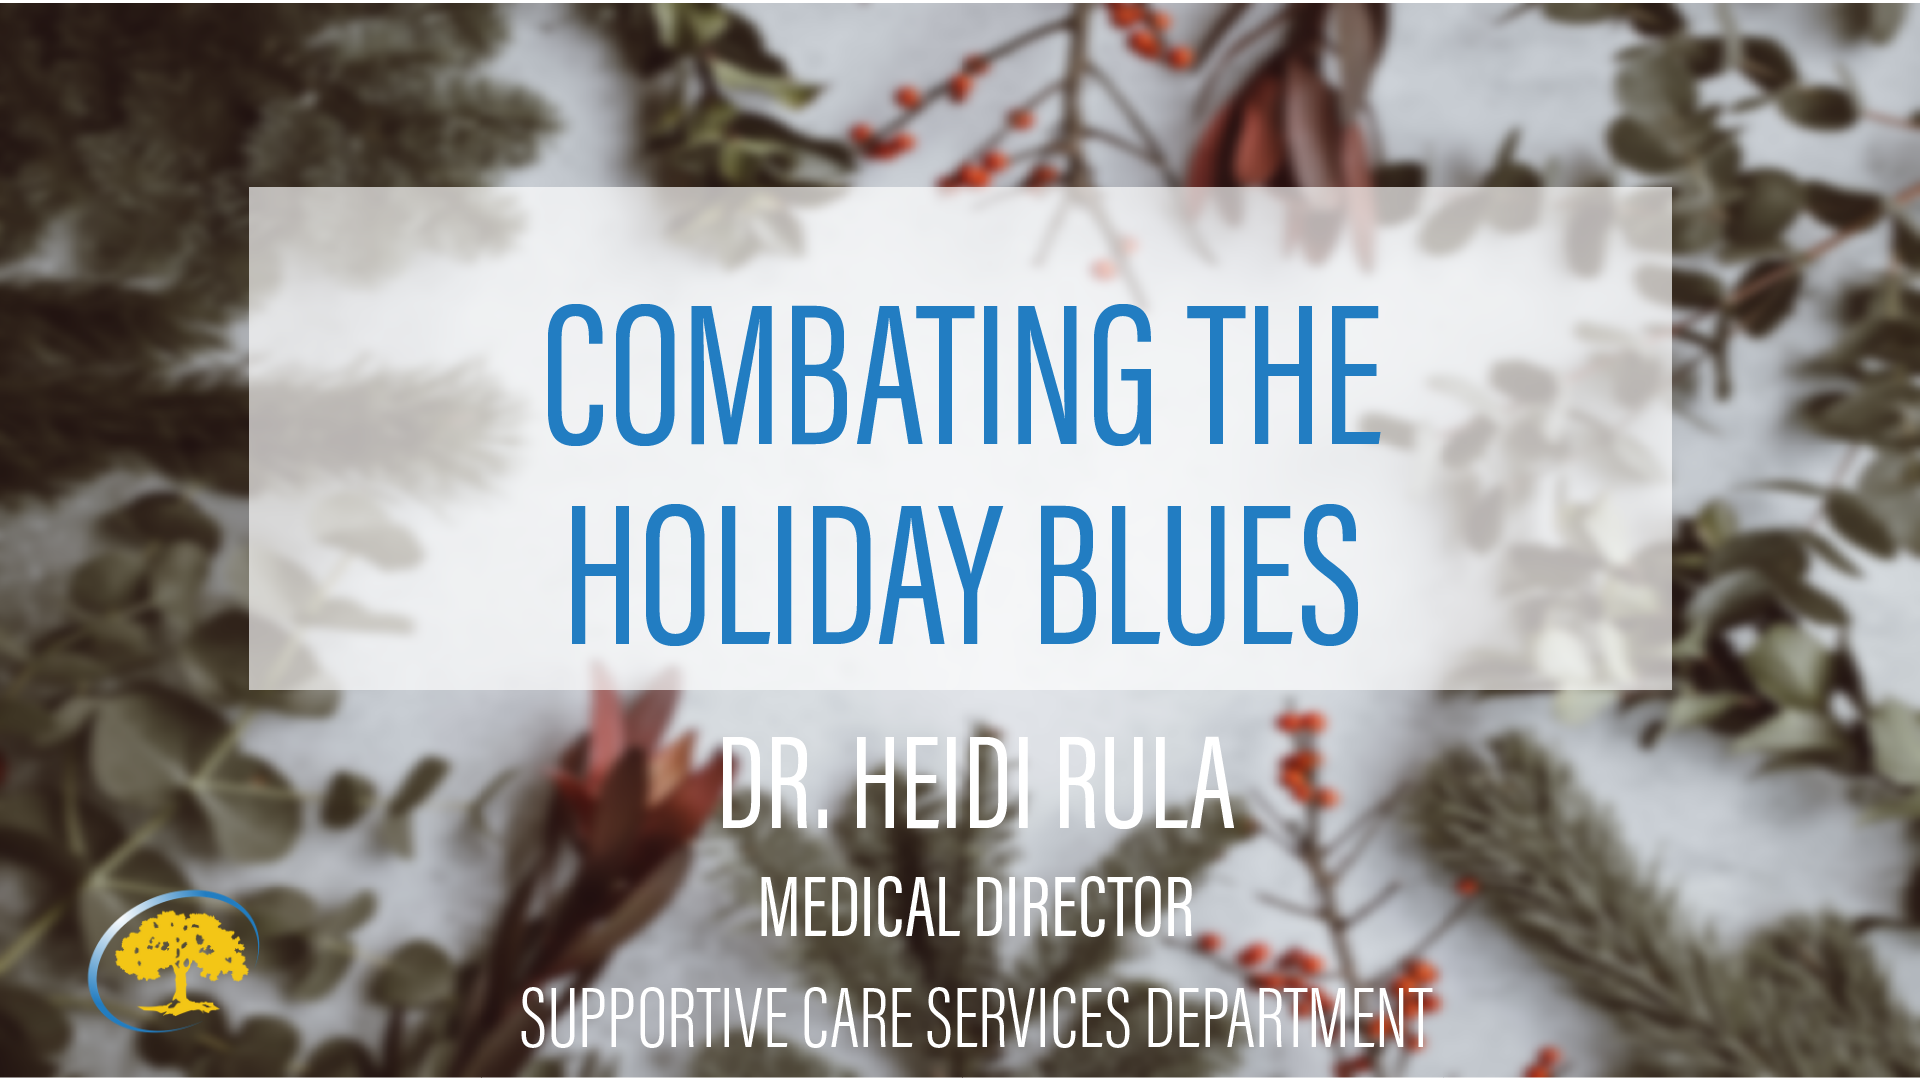 Combating the Holiday Blues